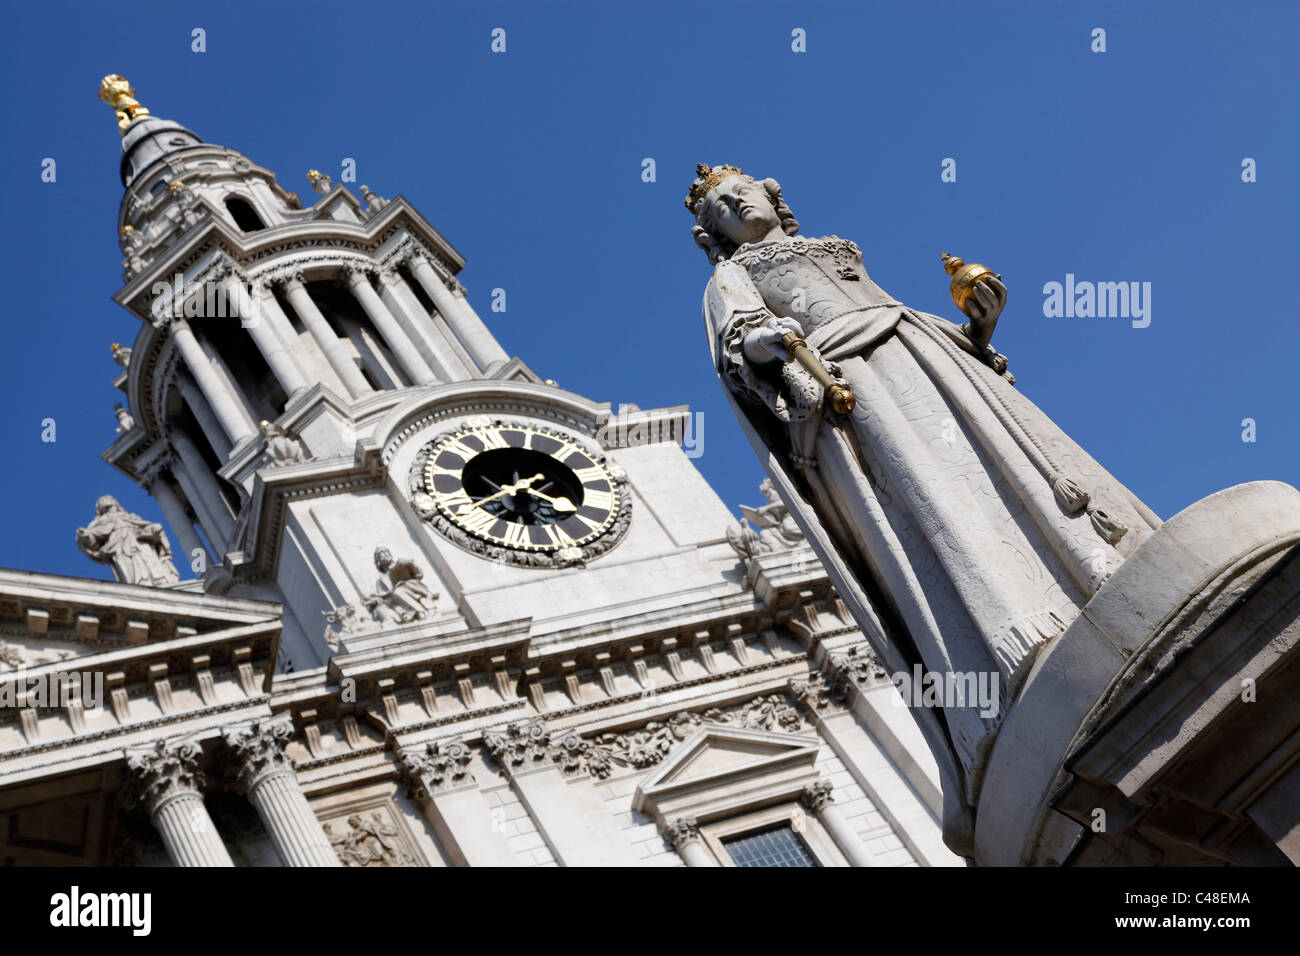 Statue of Queen Anne outside St. Paul's Cathedral in London, England Stock Photo